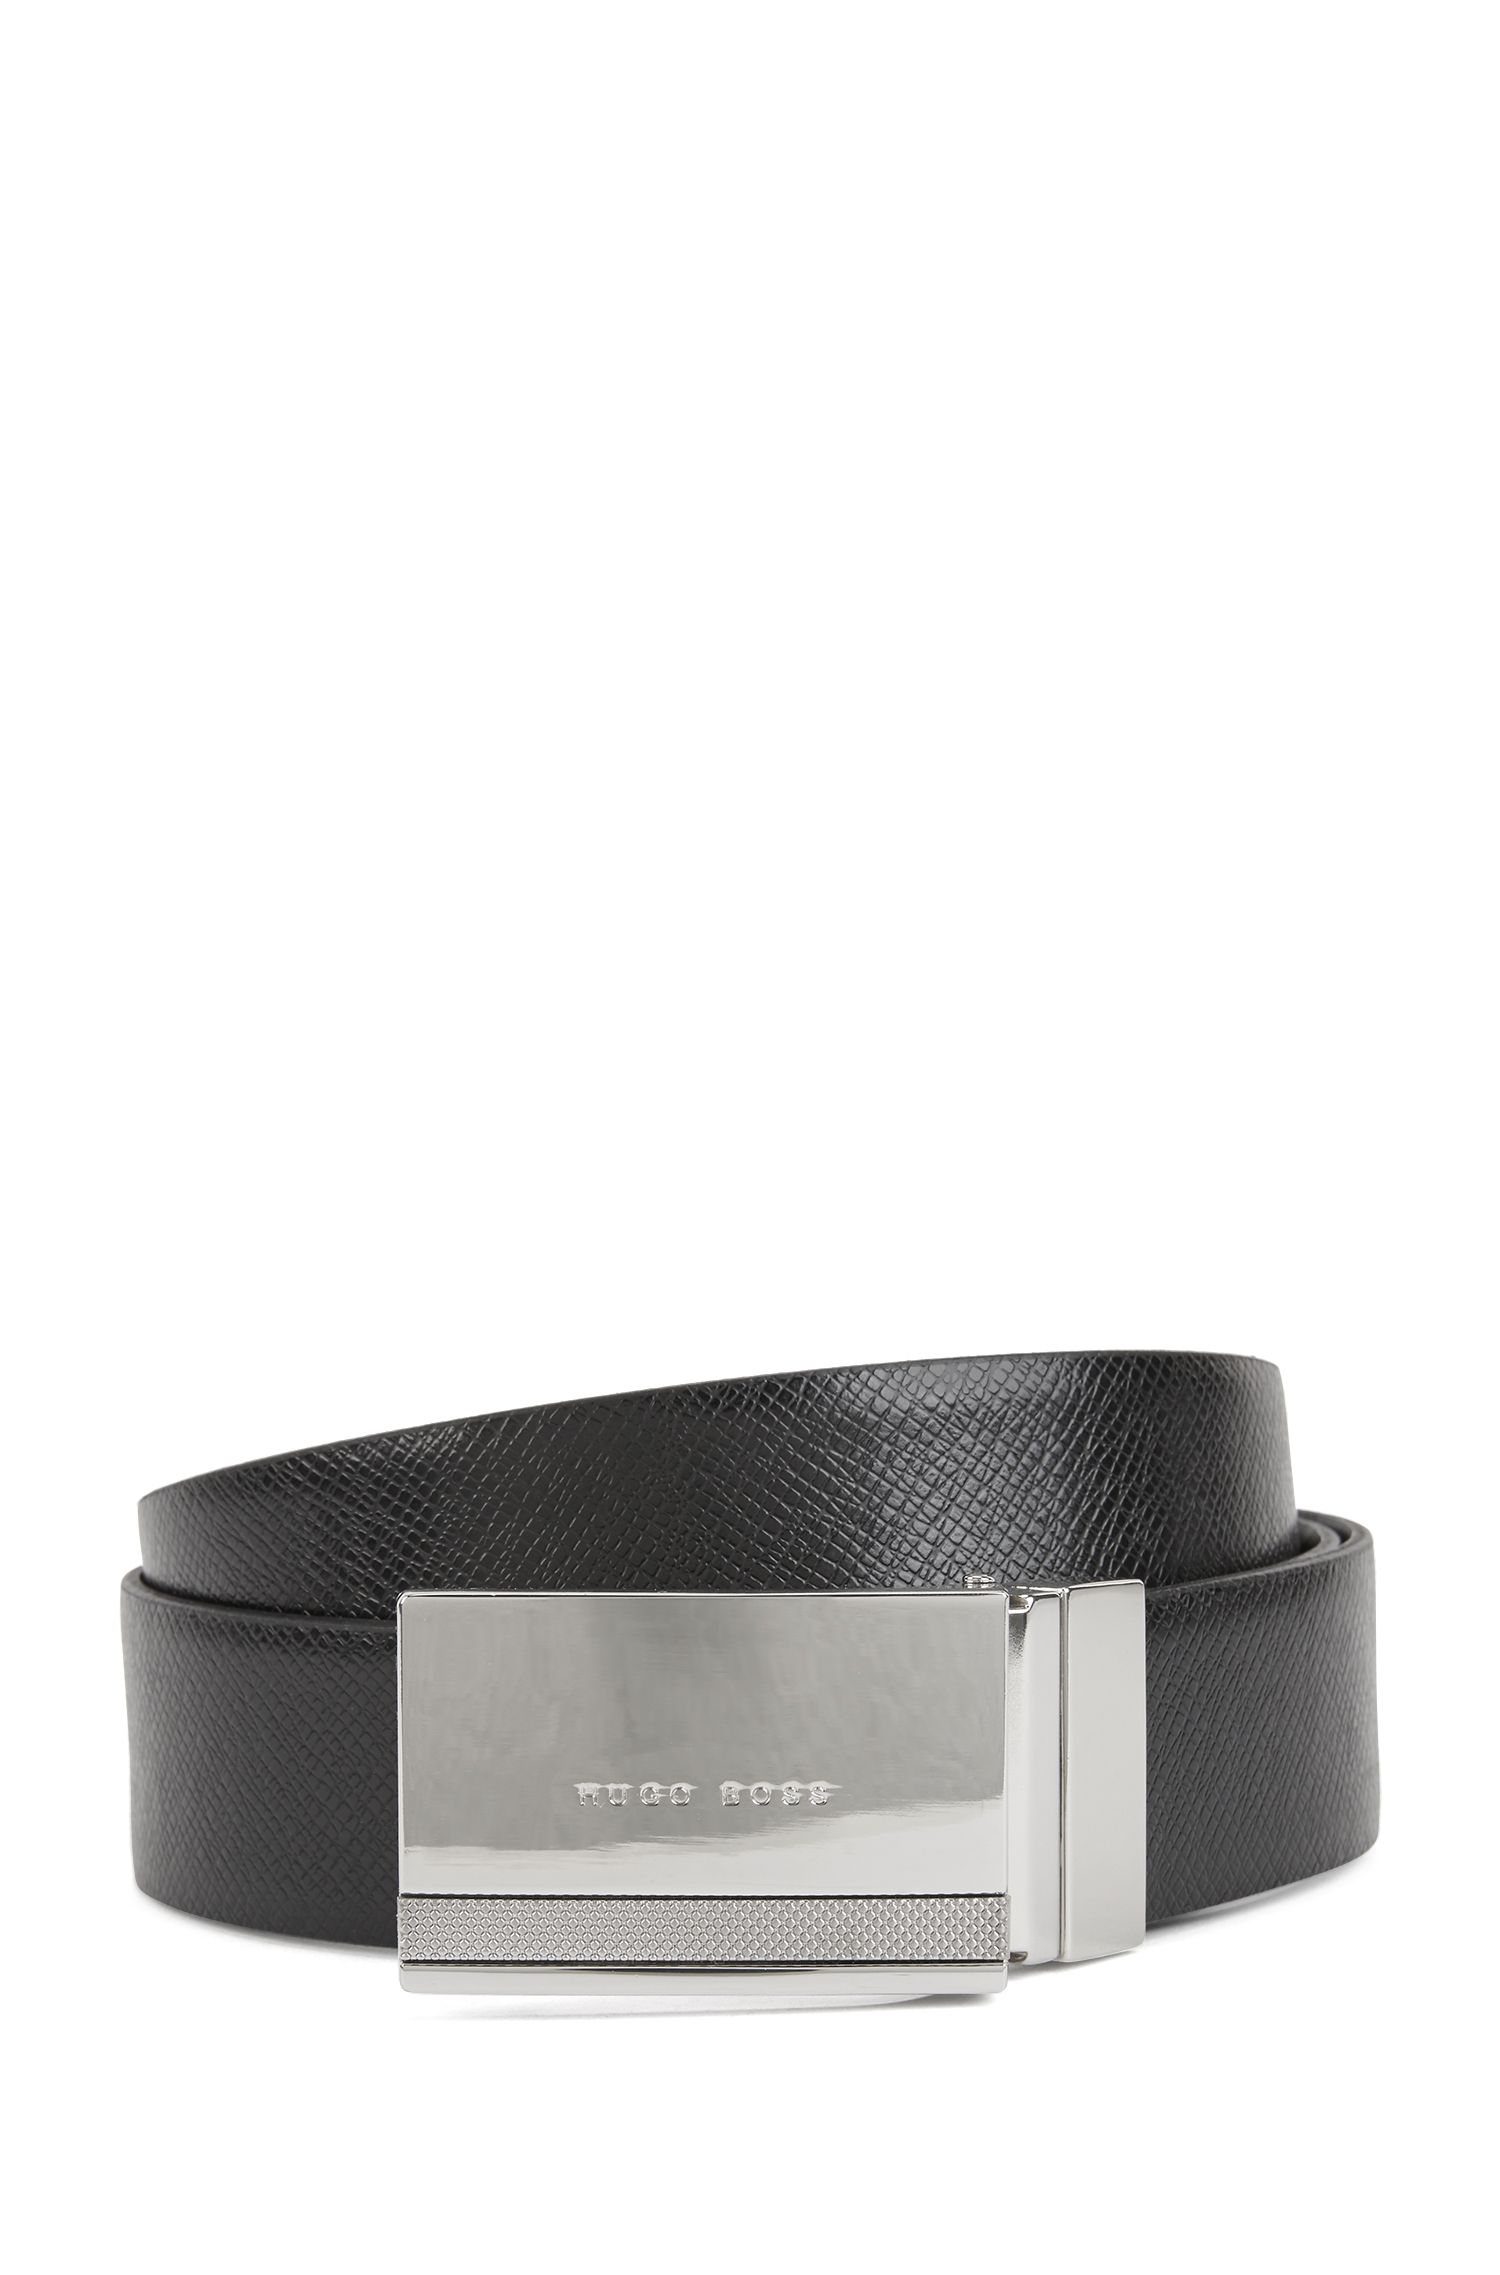 Reversible leather belt with double buckle option